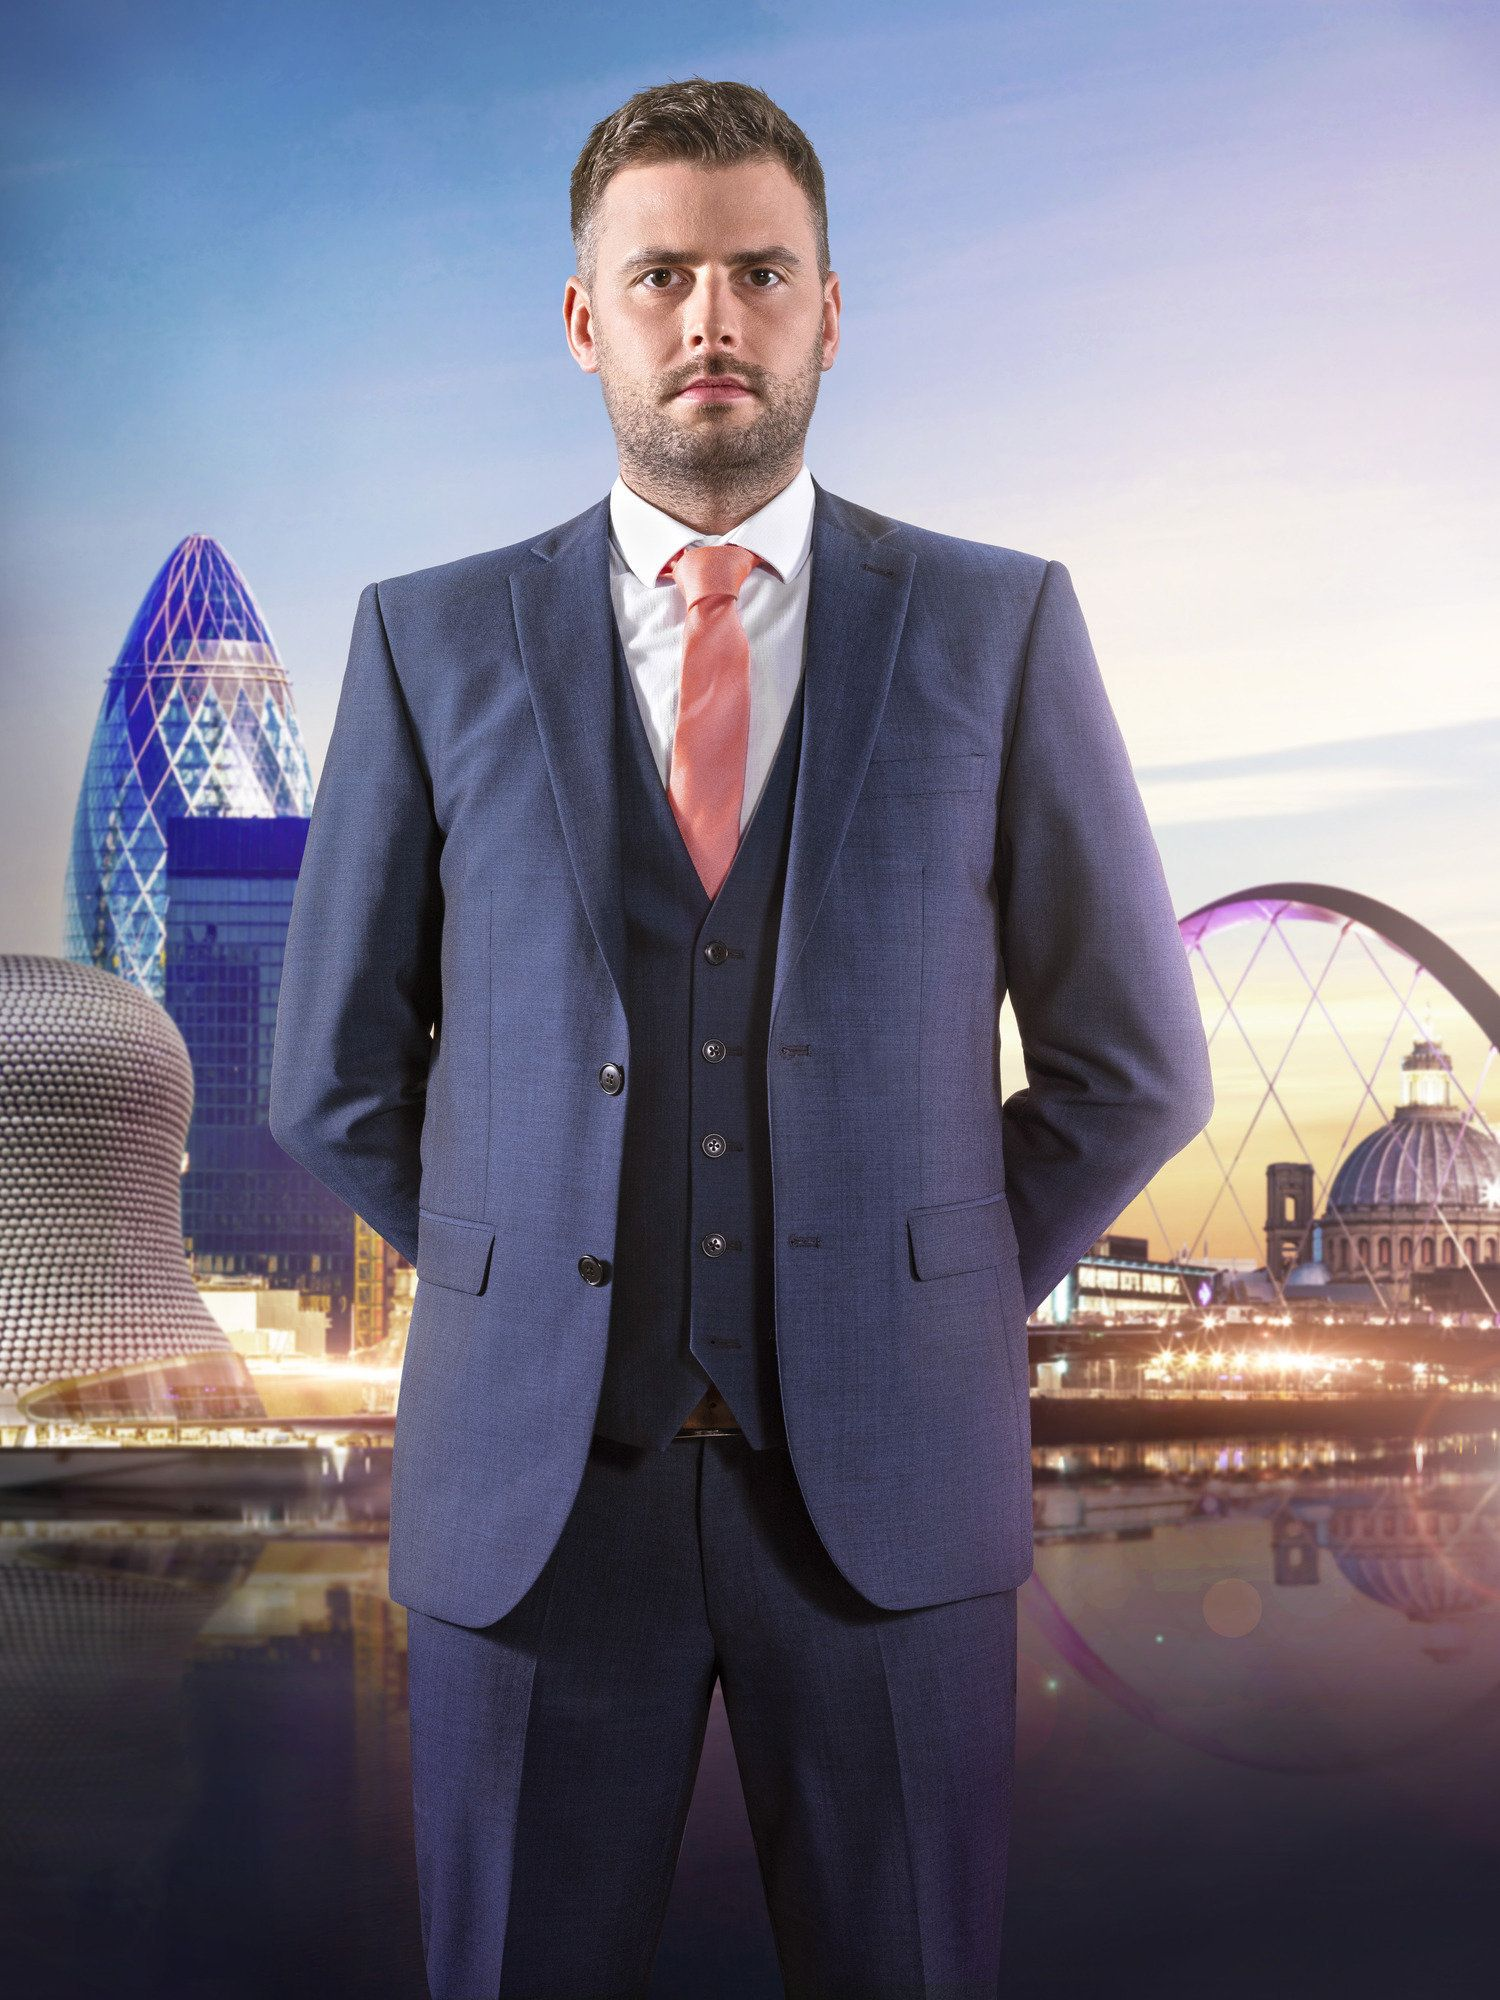 'The Apprentice' Viewers Call Out Contestant's Sexist Comments About Female